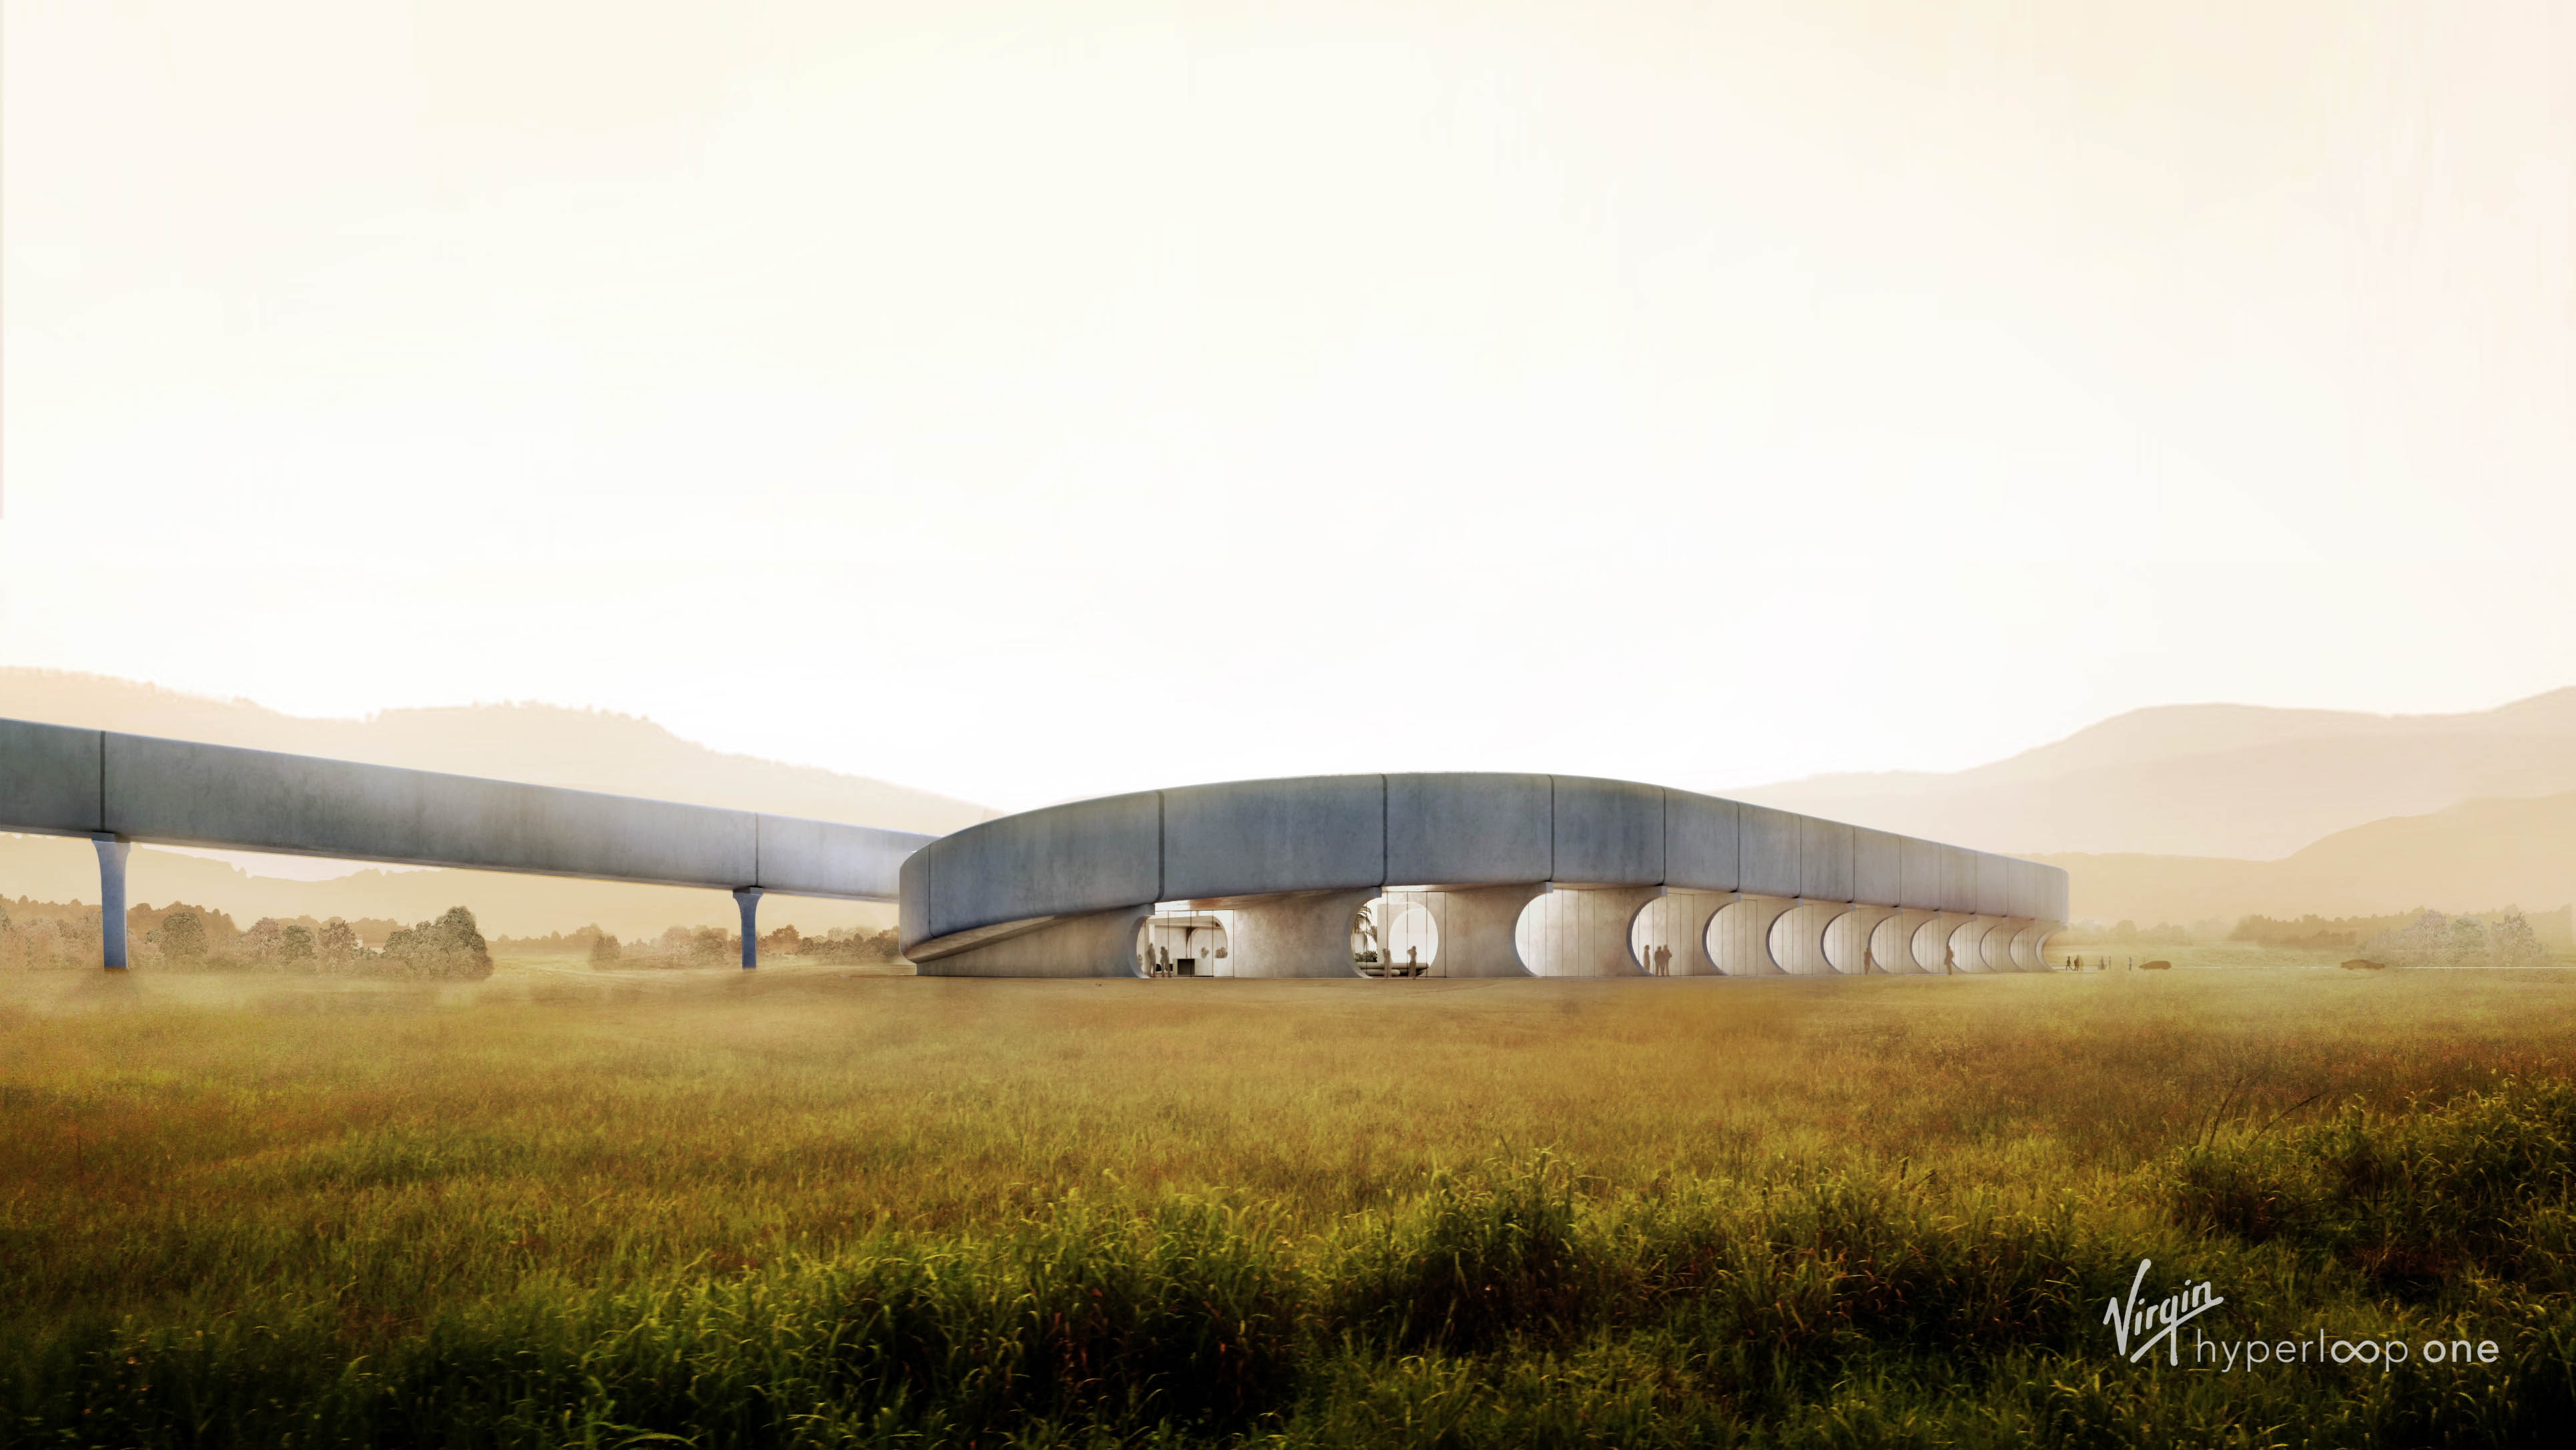 India Hyperloop with vast open space and mountains